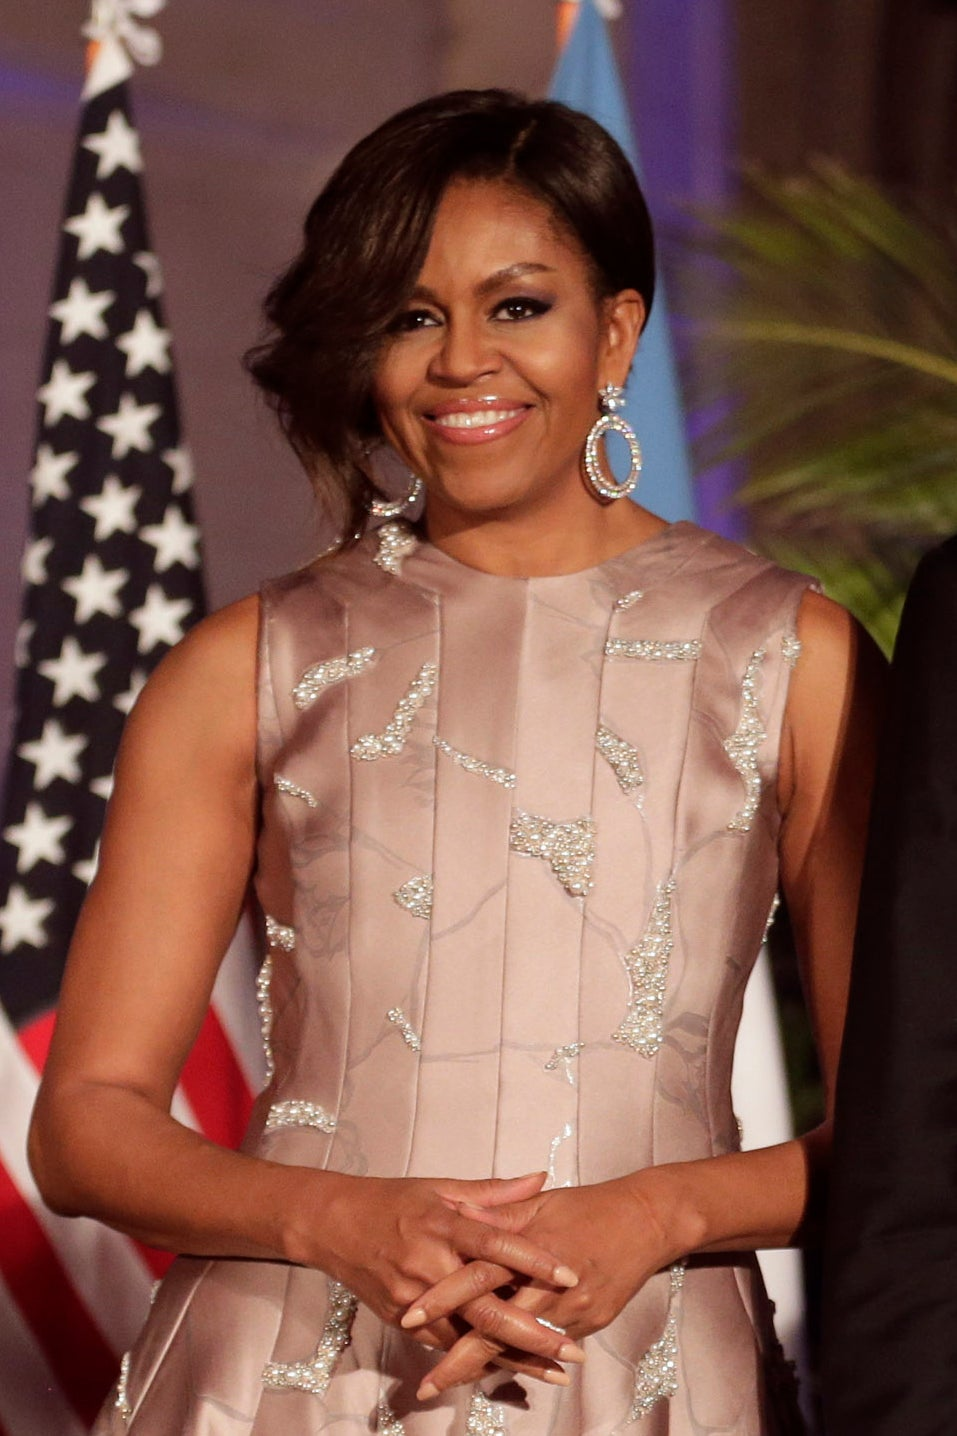 Michelle Obama's Daily Diary